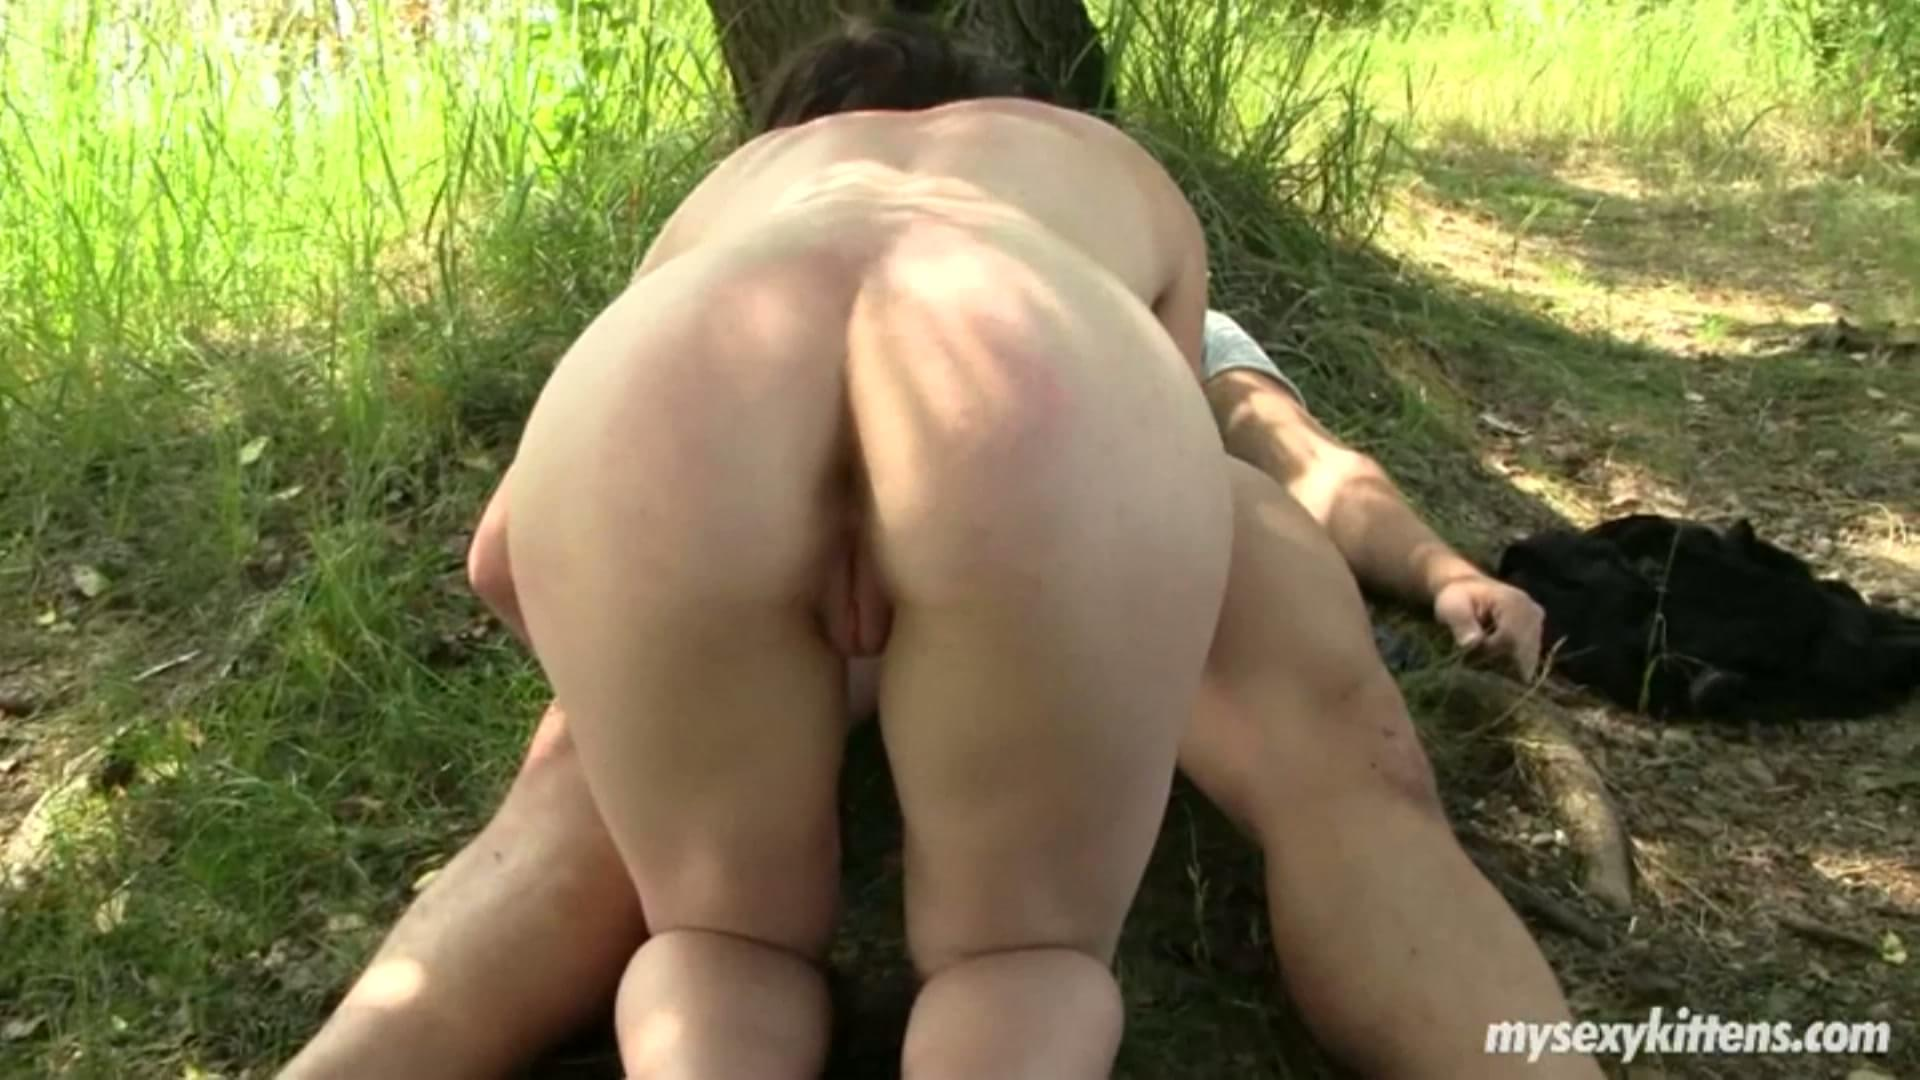 fucking in the woods porn